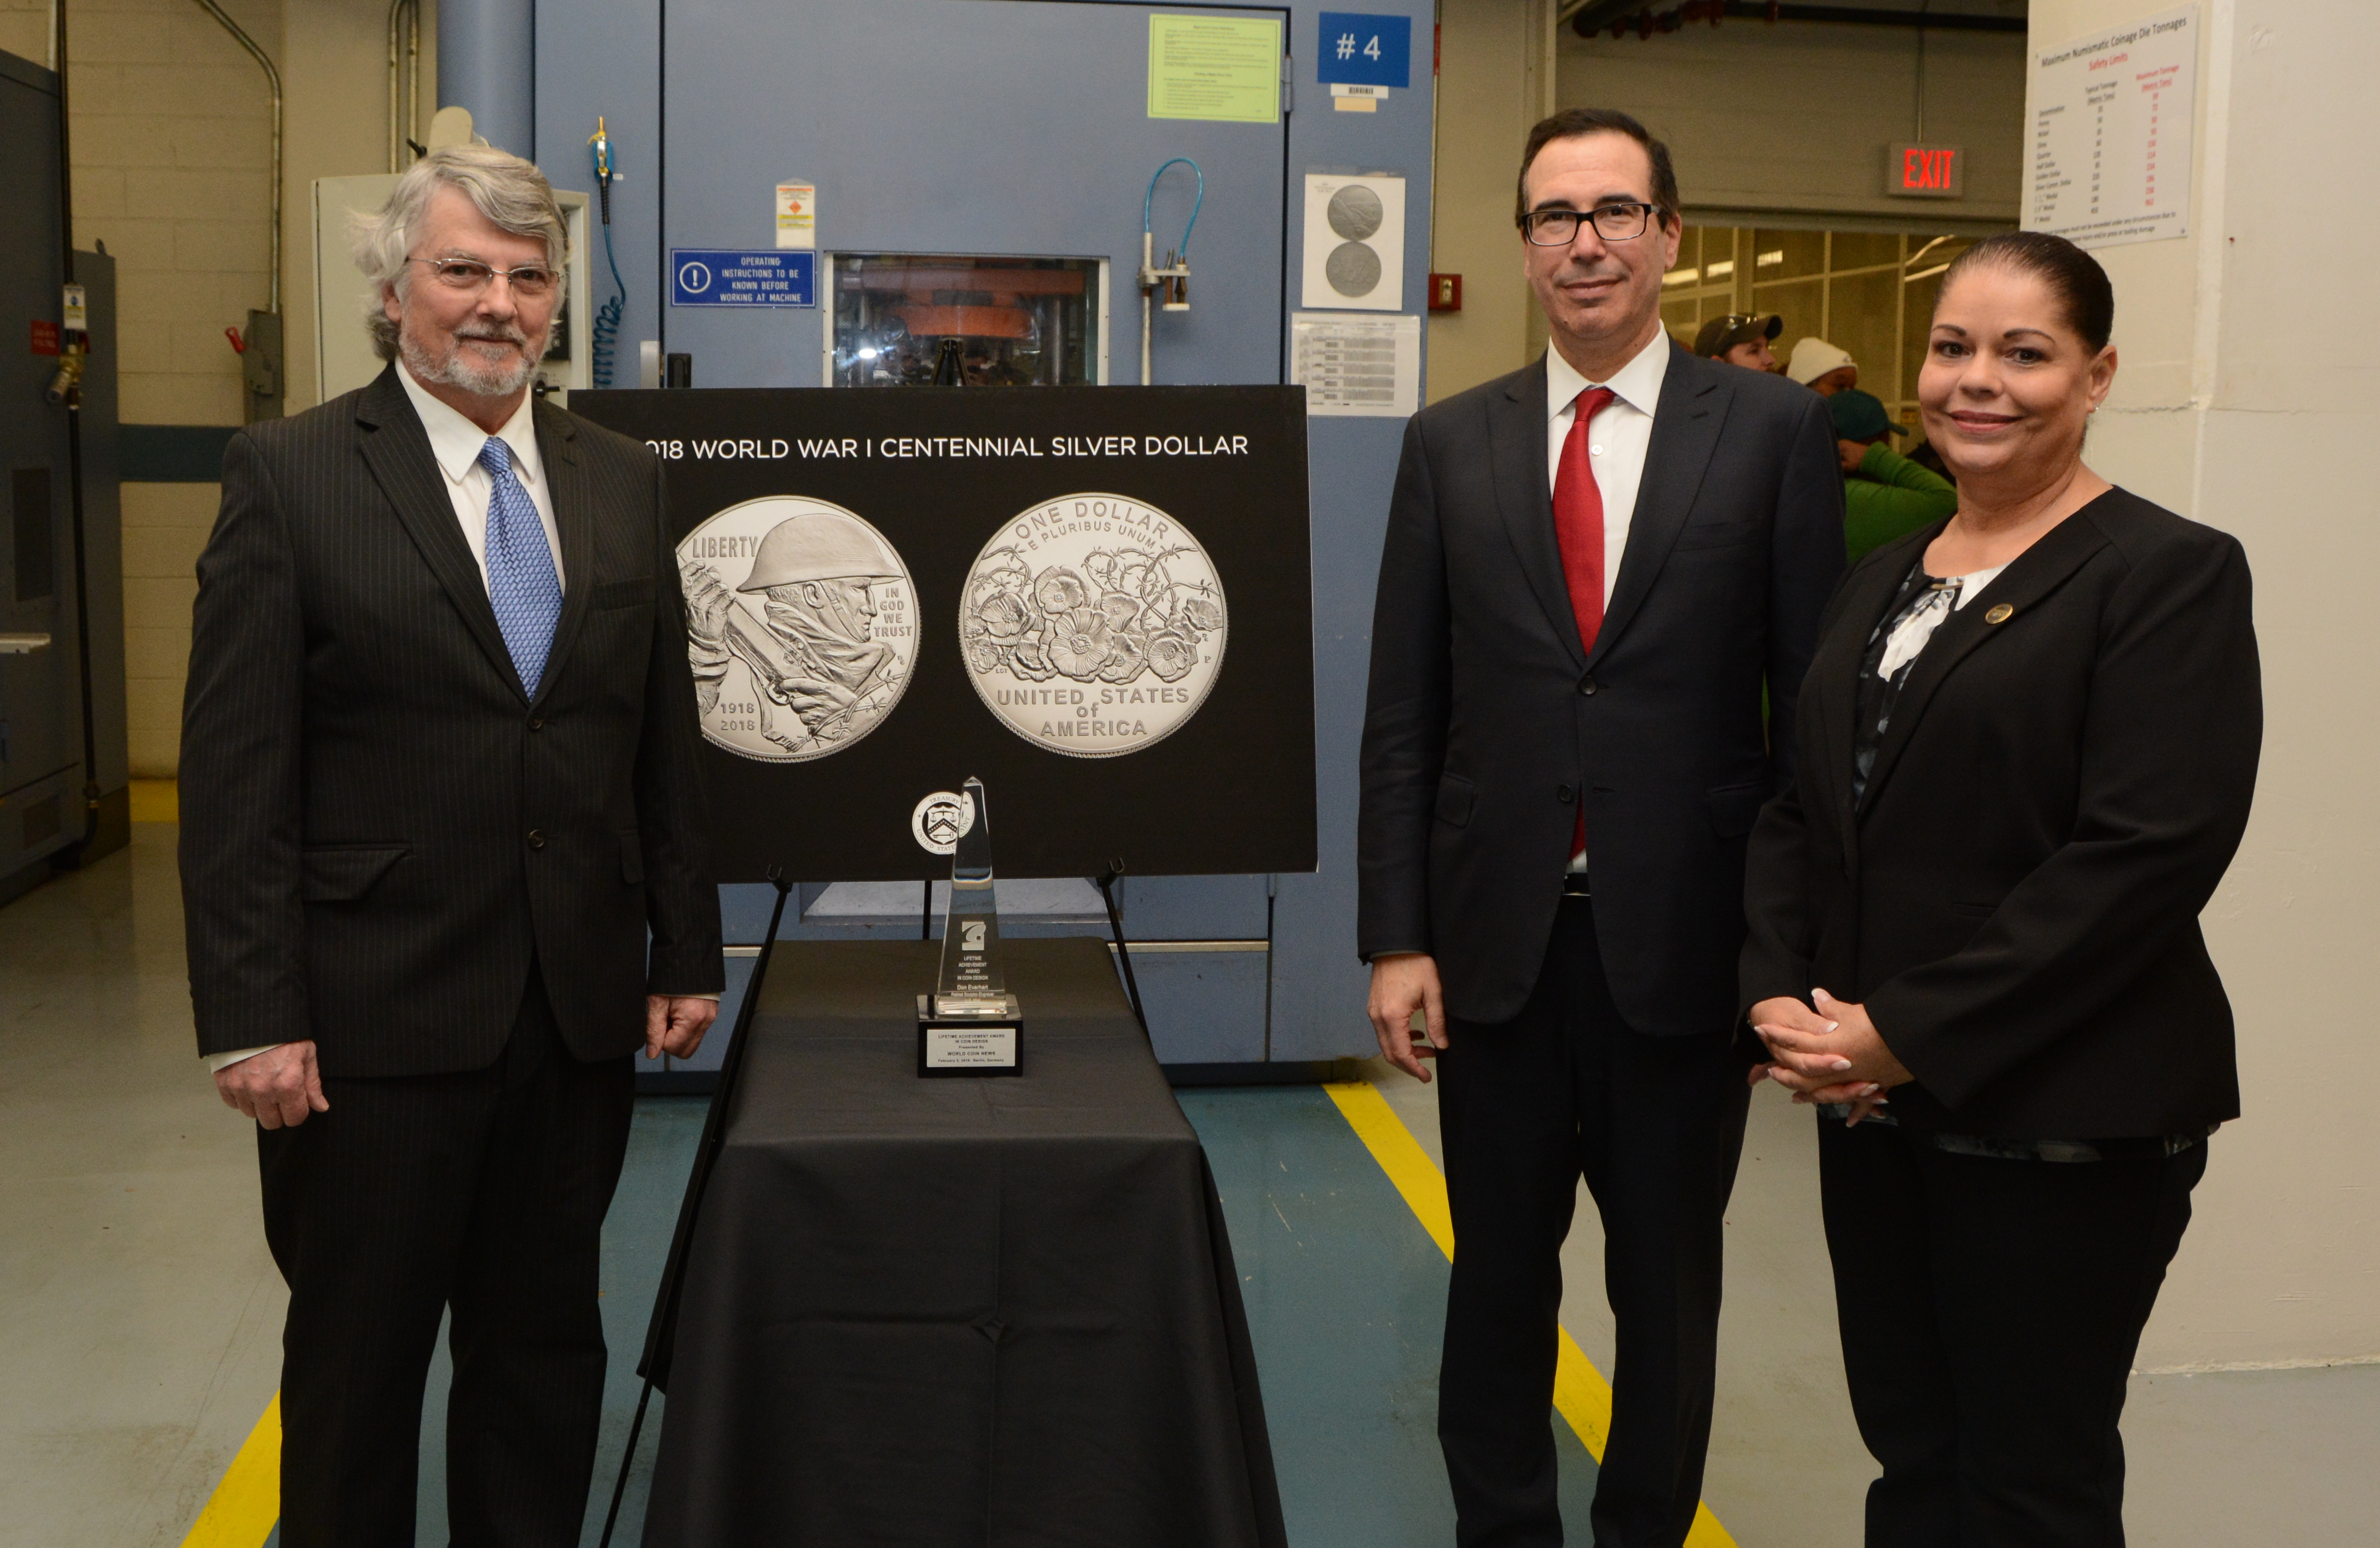 Treasury Secretary Steven Mnuchin, U.S. Mint Acting Superintendent (Philadelphia facility) Laurie Johnson, and retired U.S. Mint Sculptor-Engraver Don Everhart pose for a photo during a tour of the numismatic room at the U.S. Mint facility in Philadelphia